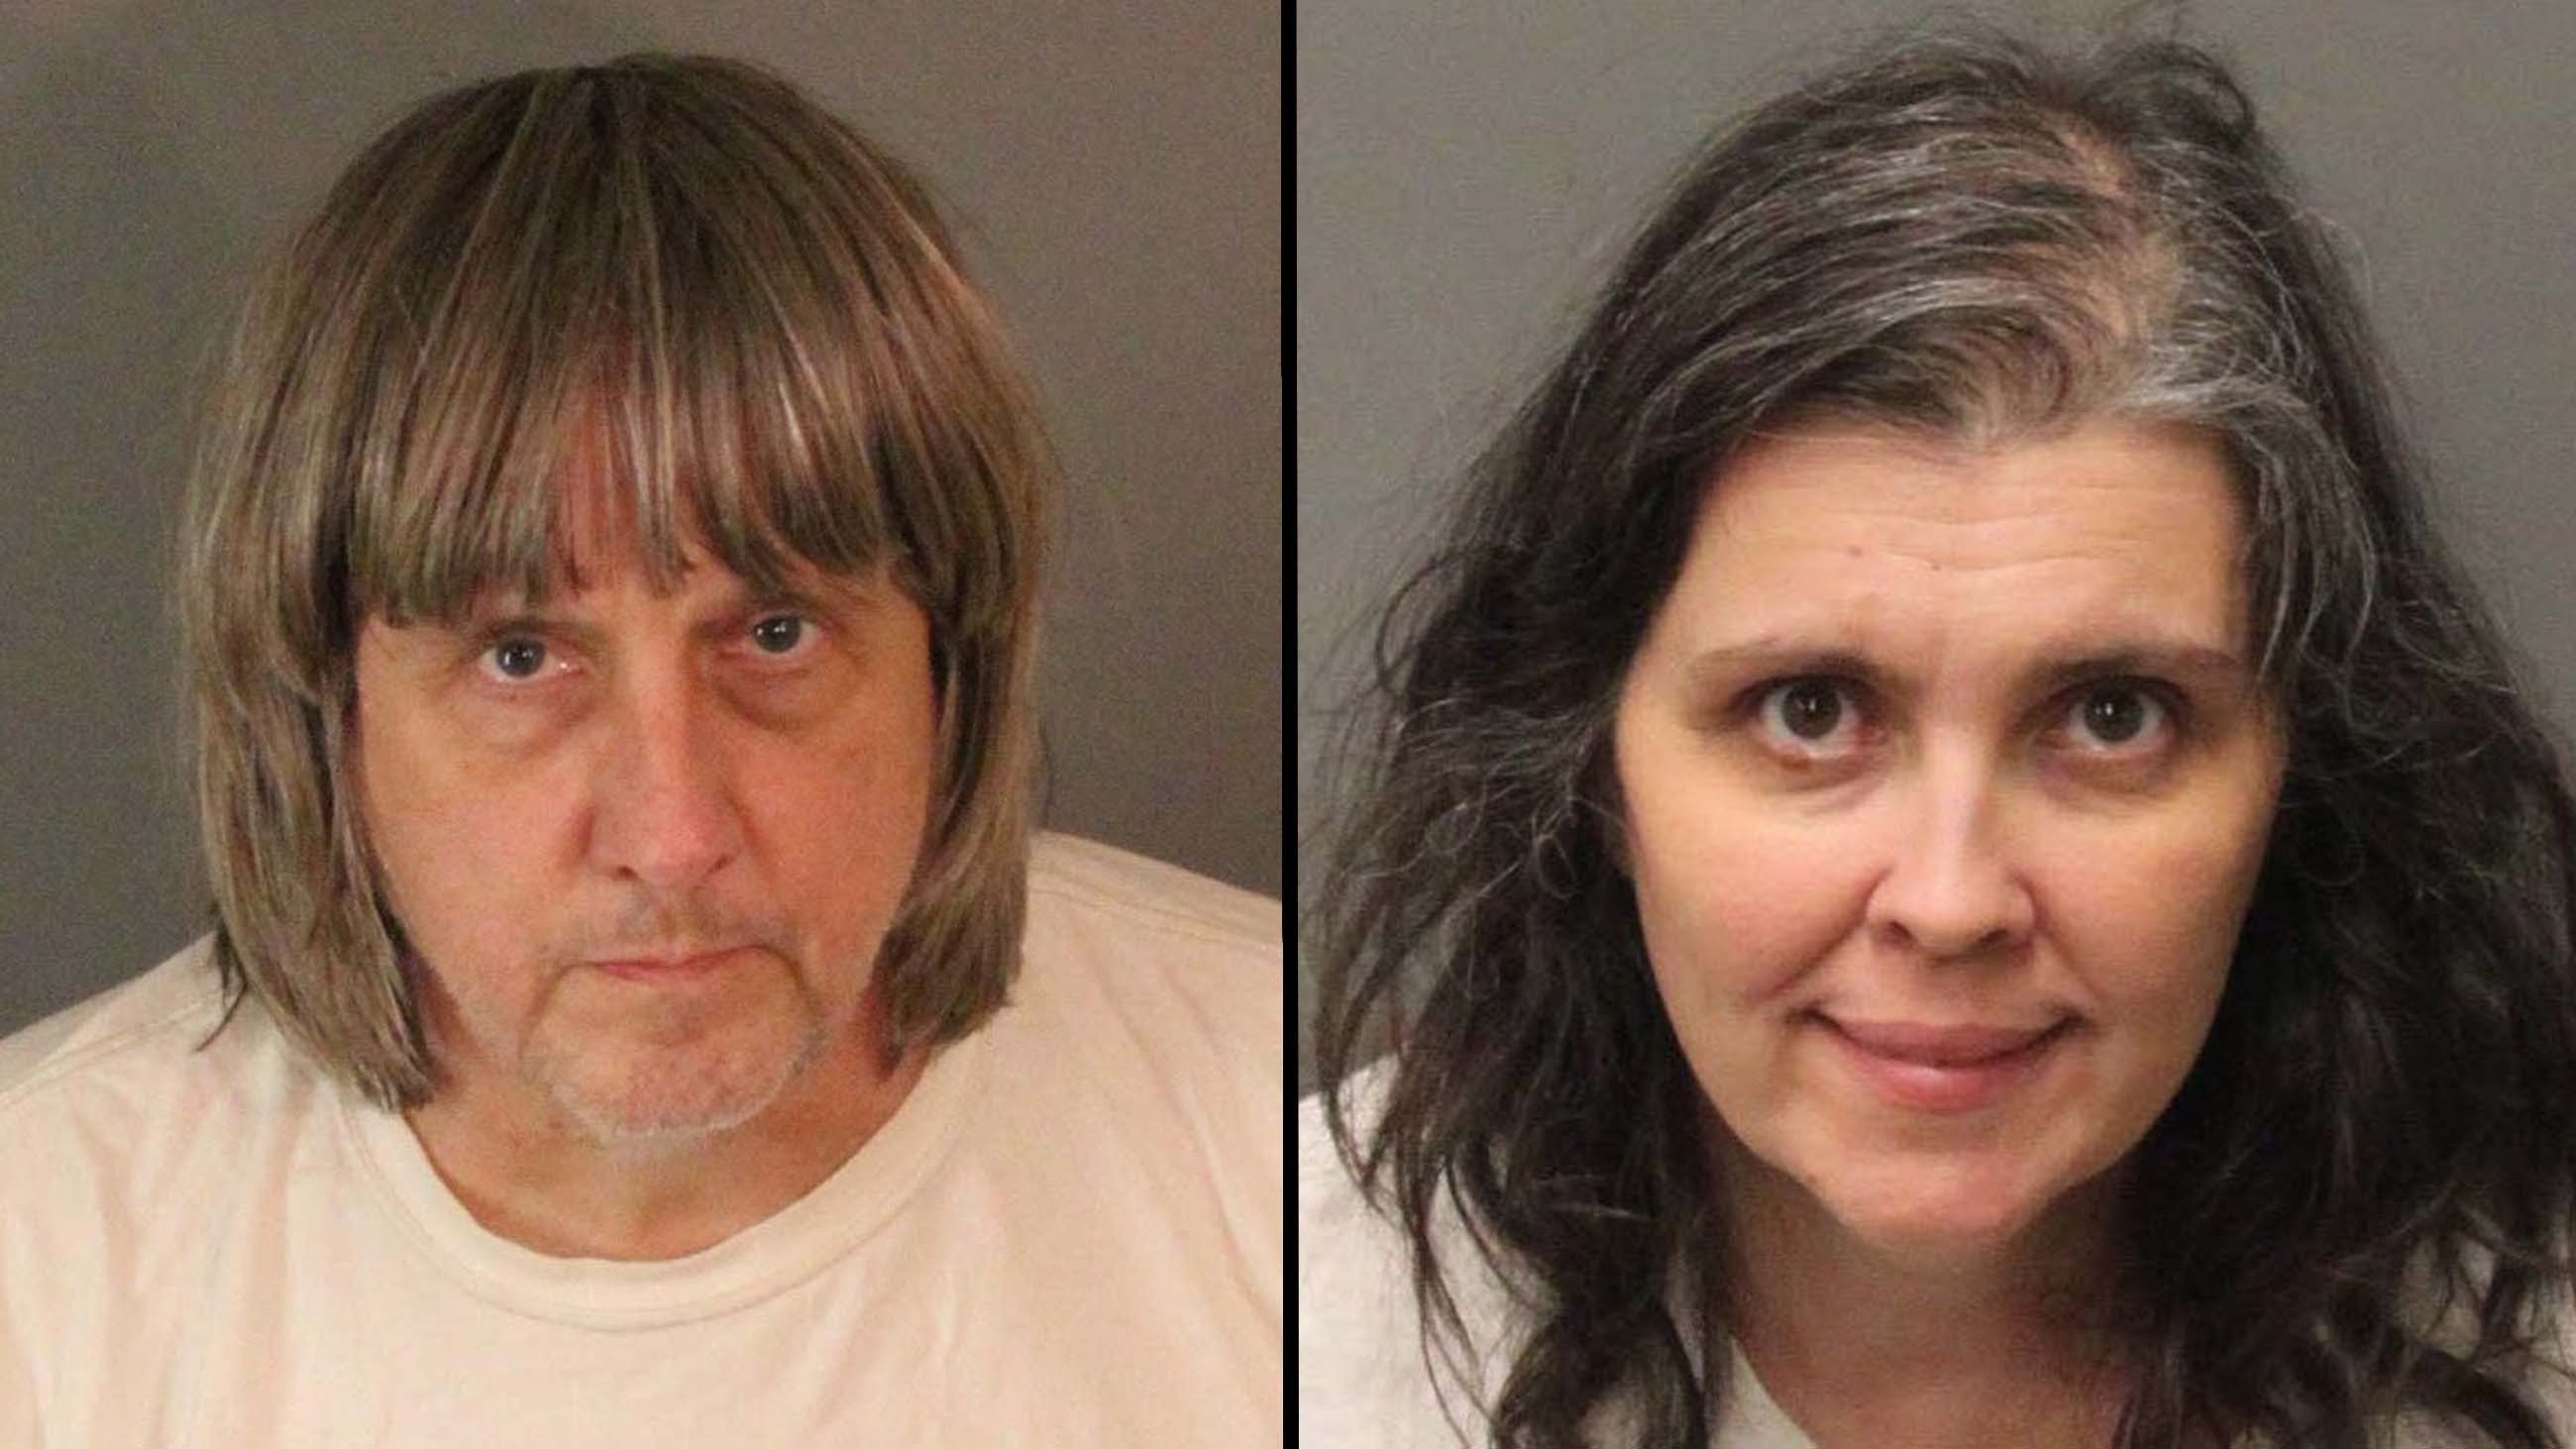 Prosecutors Seek to Prevent 'Horror House' Parents From Contacting Children